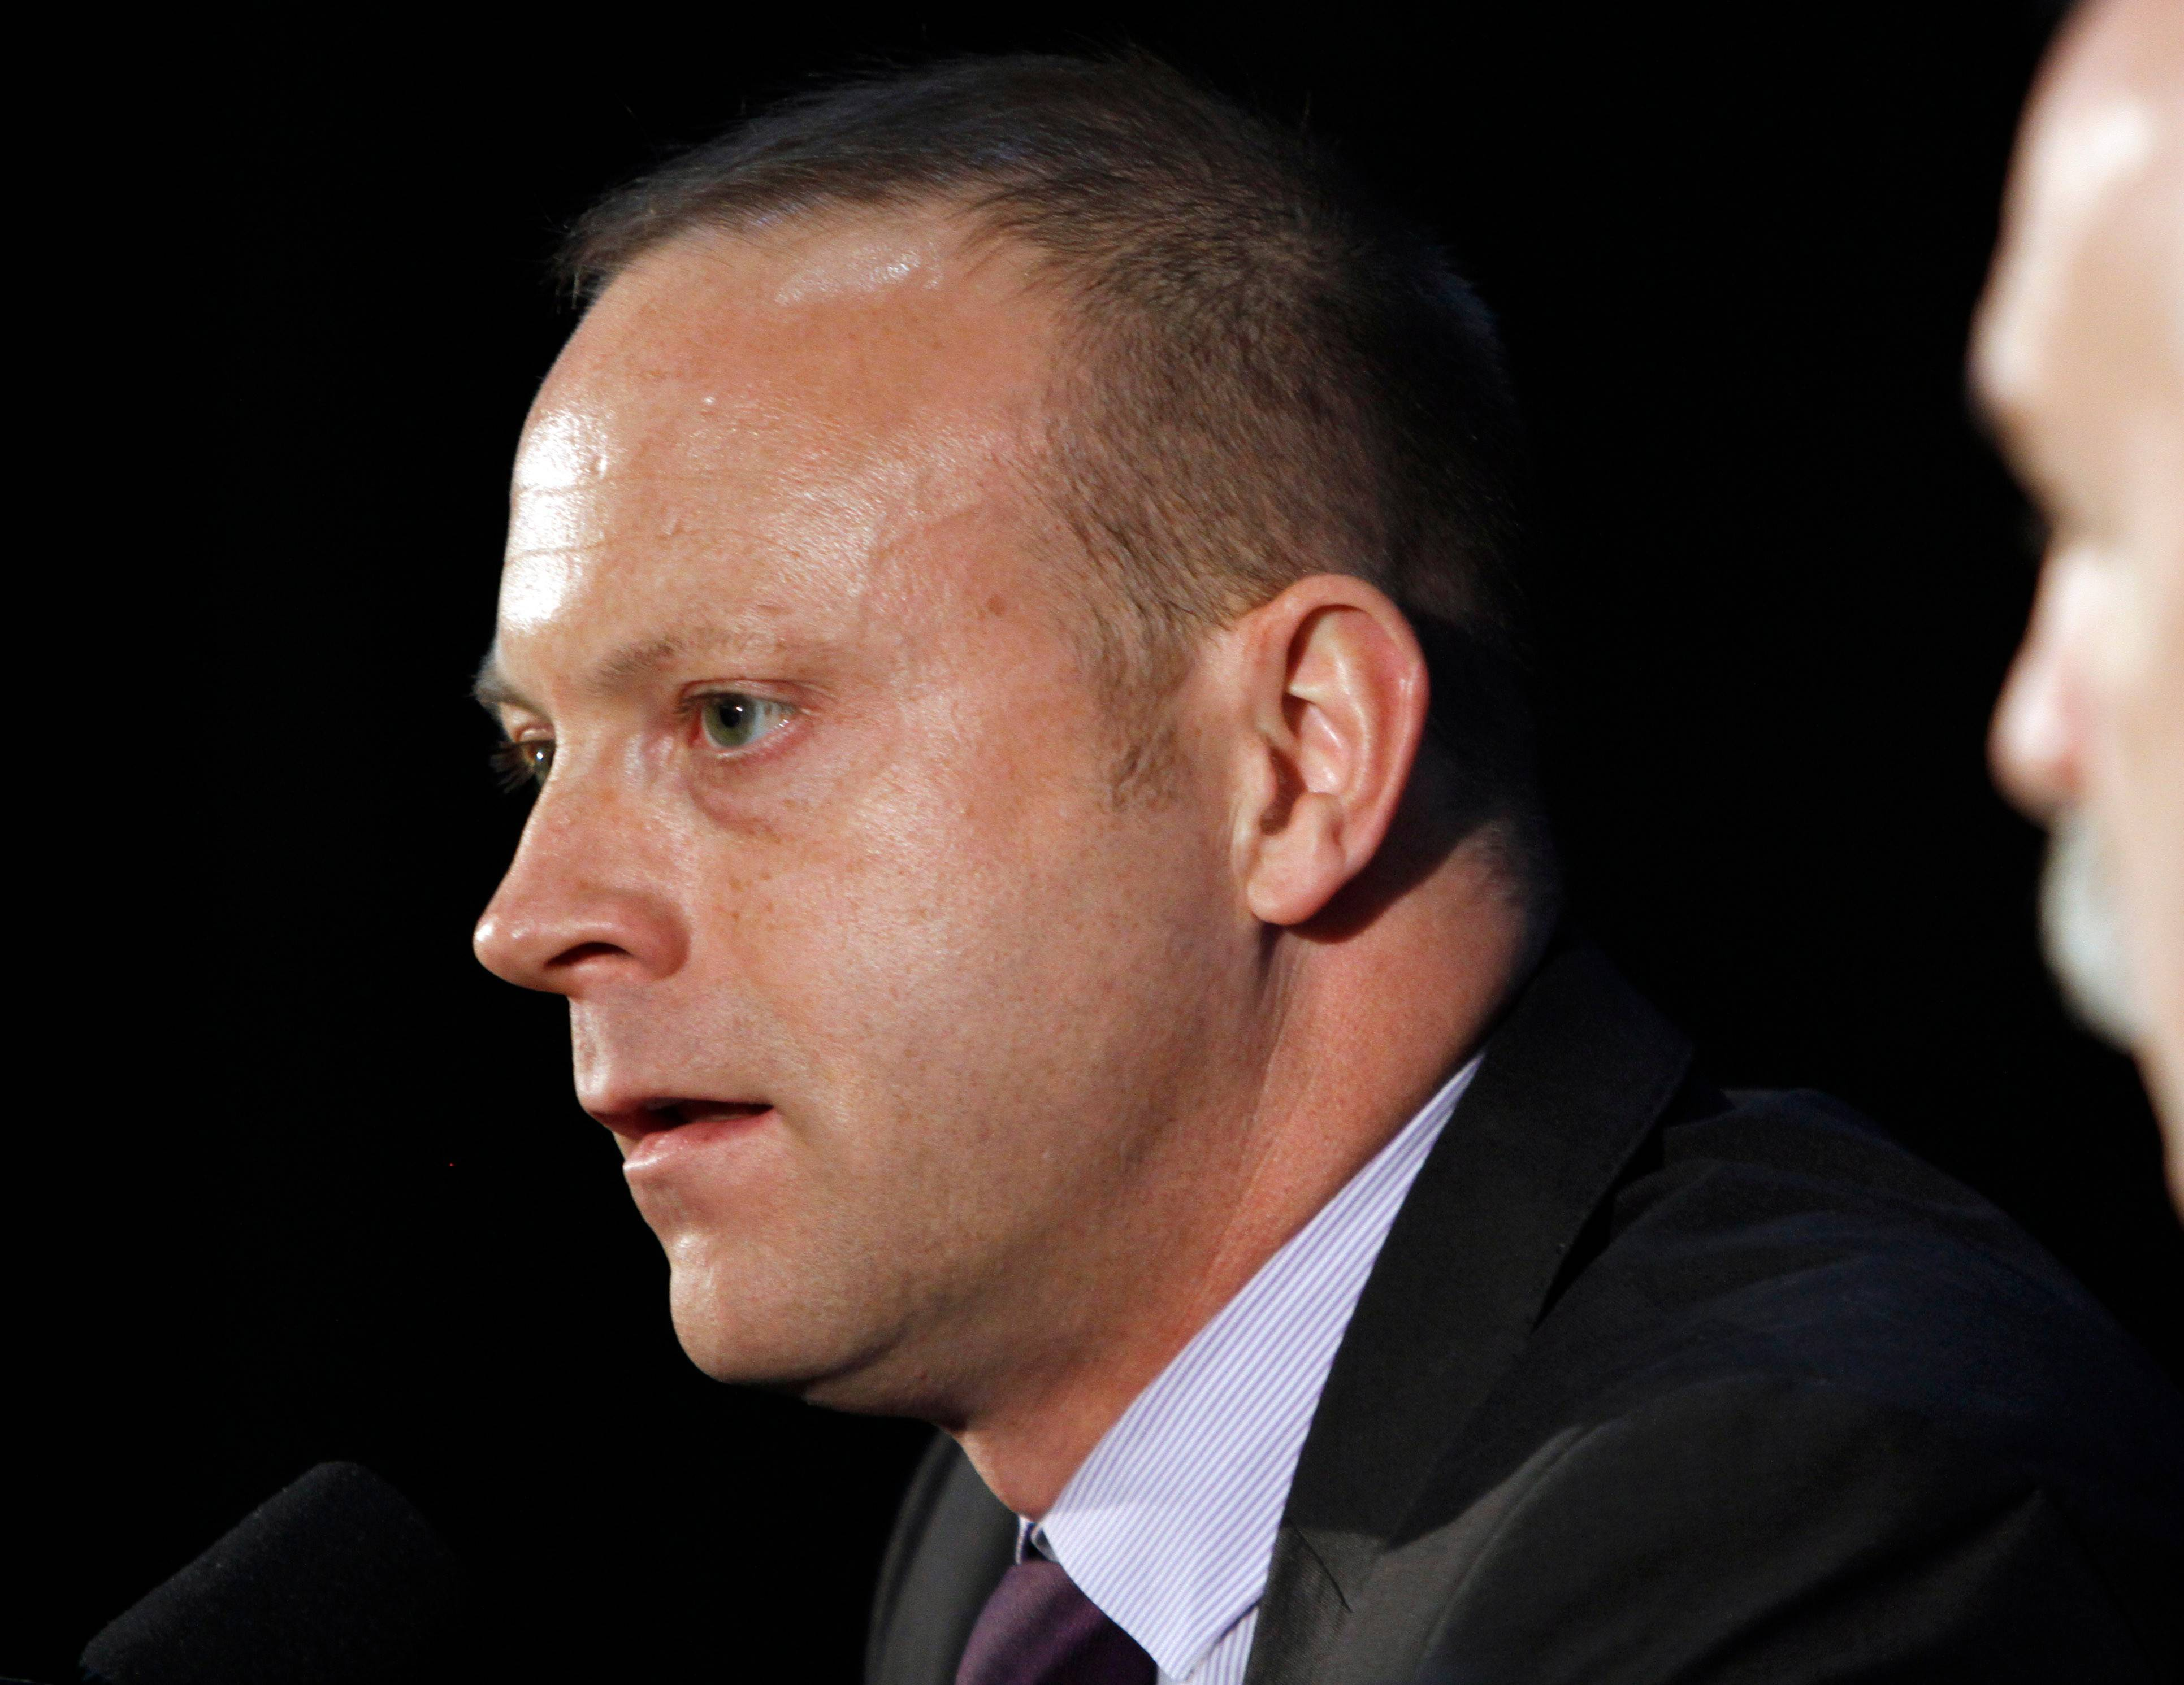 Blackhawks general manager Stan Bowman is happy with his roster as it gets ready to defend its Stanley Cup victory.